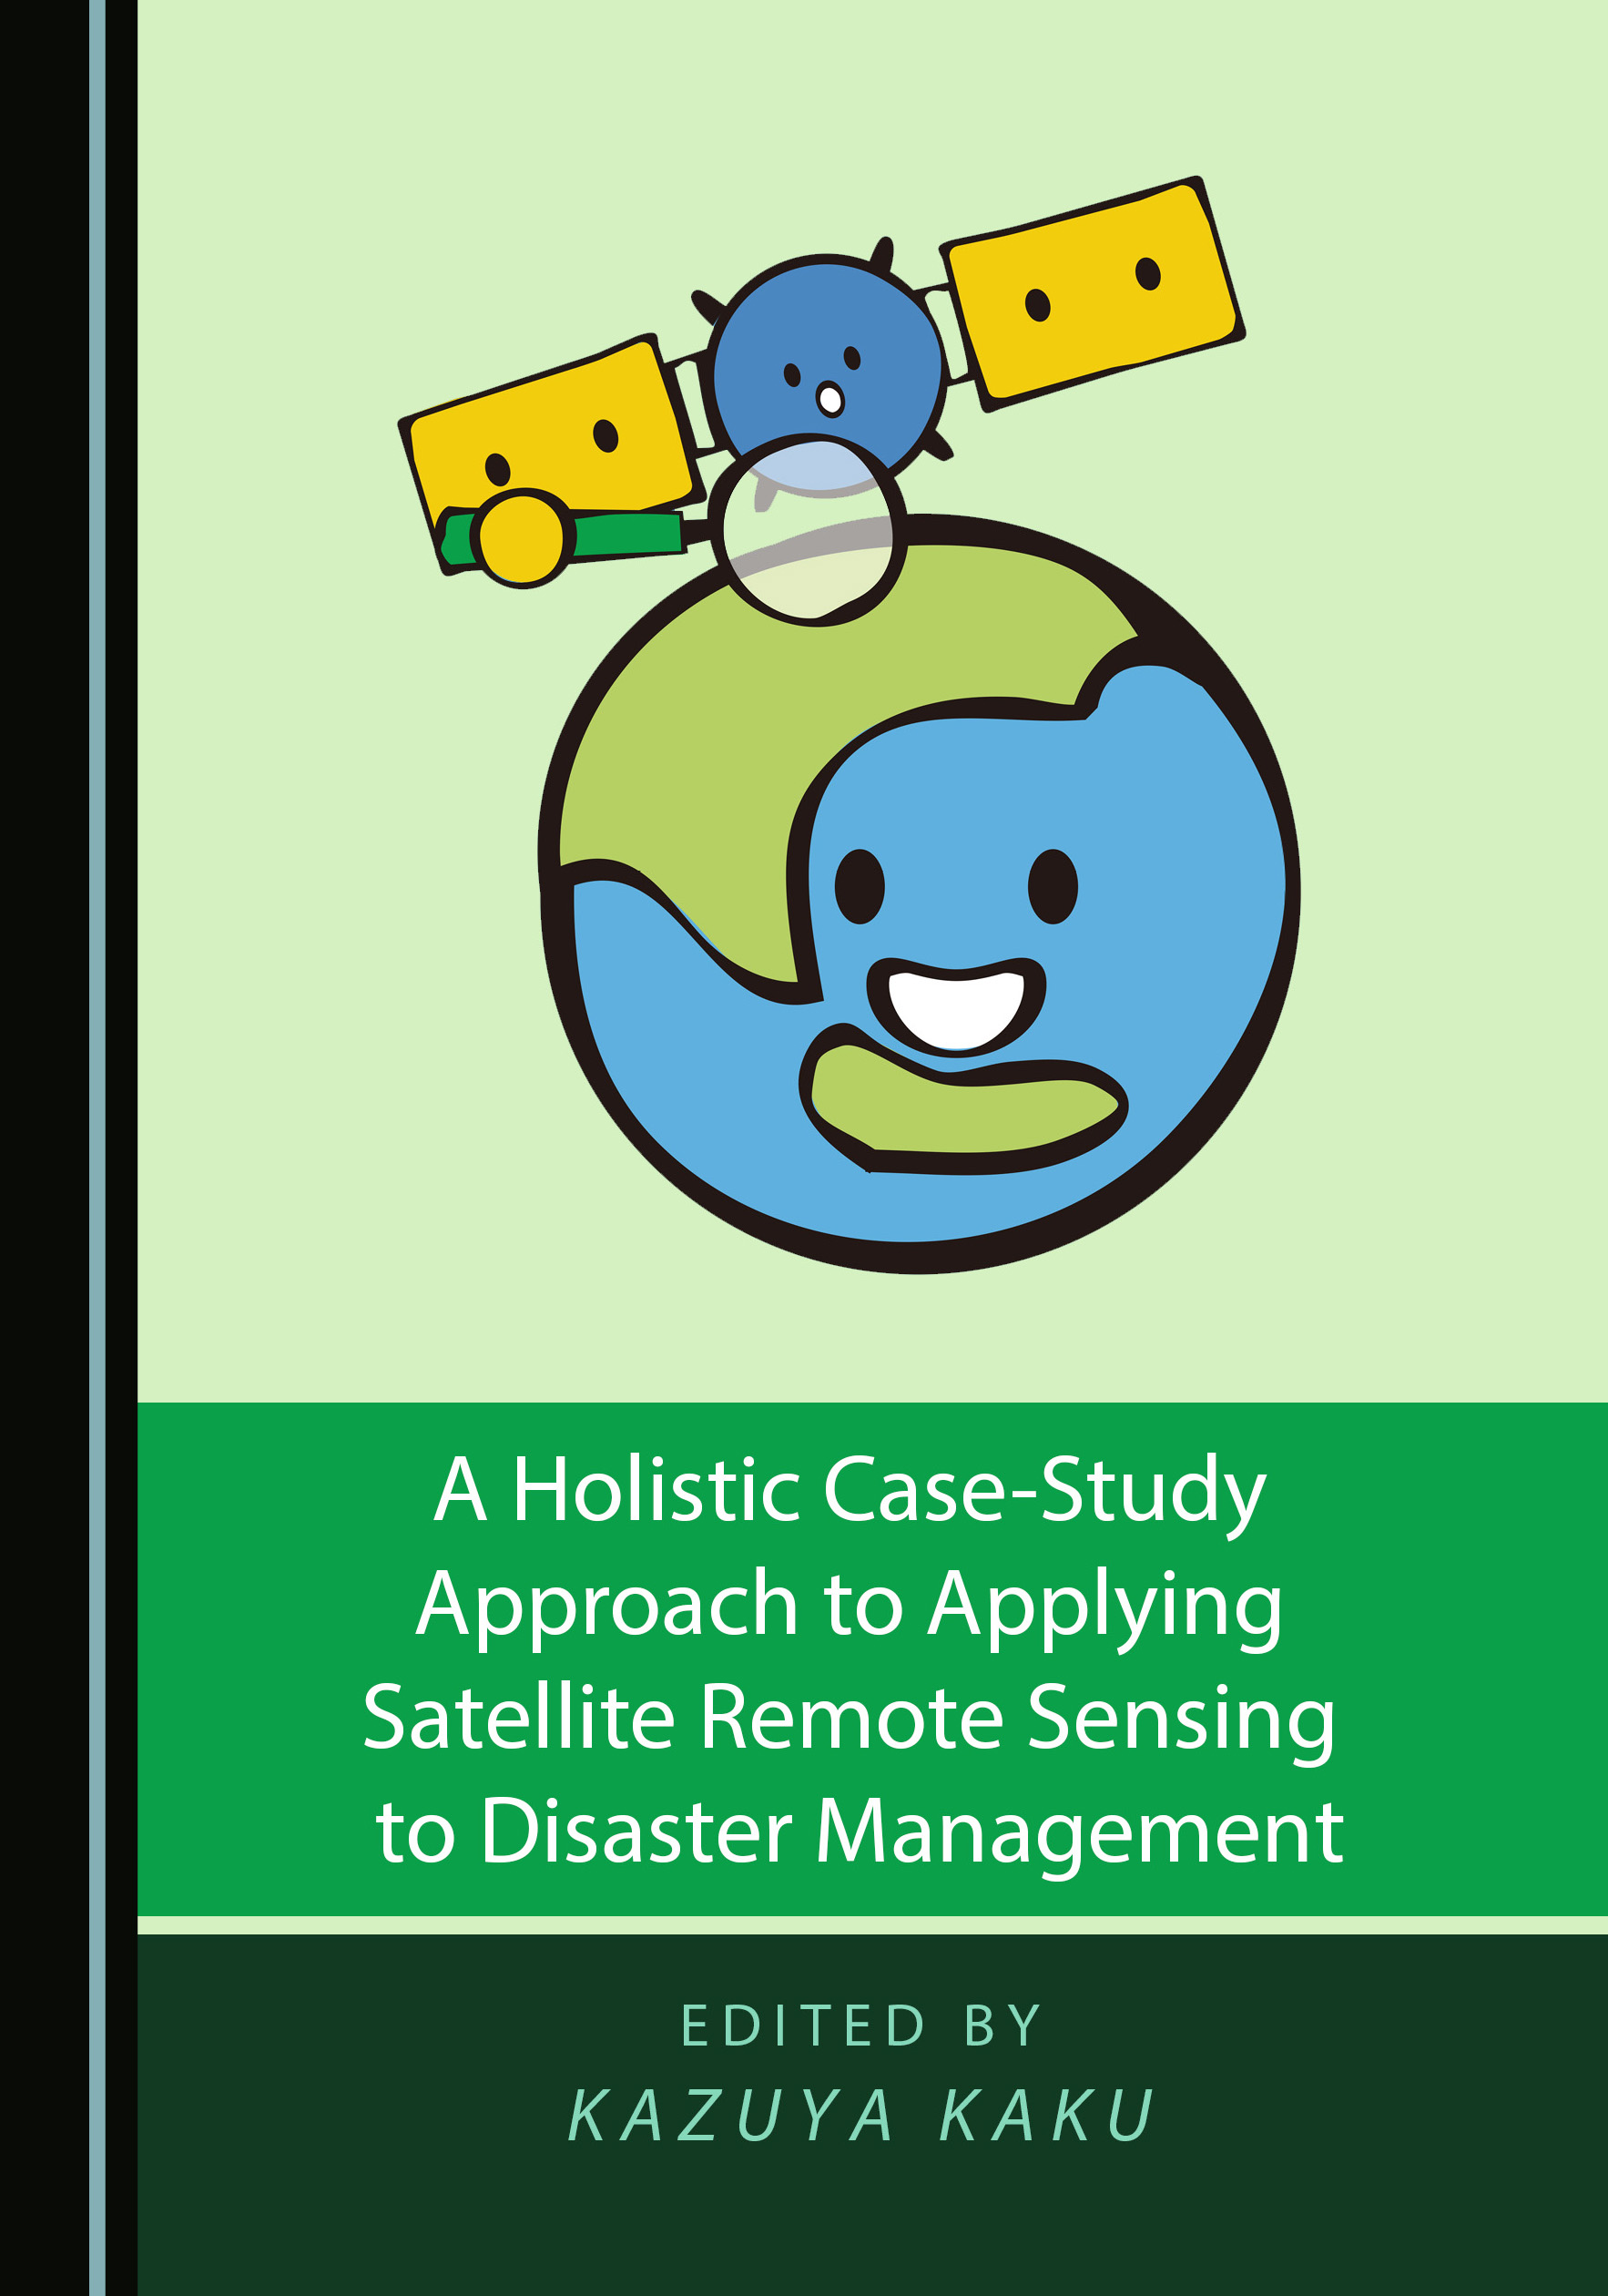 A Holistic Case-Study Approach to Applying Satellite Remote Sensing to Disaster Management